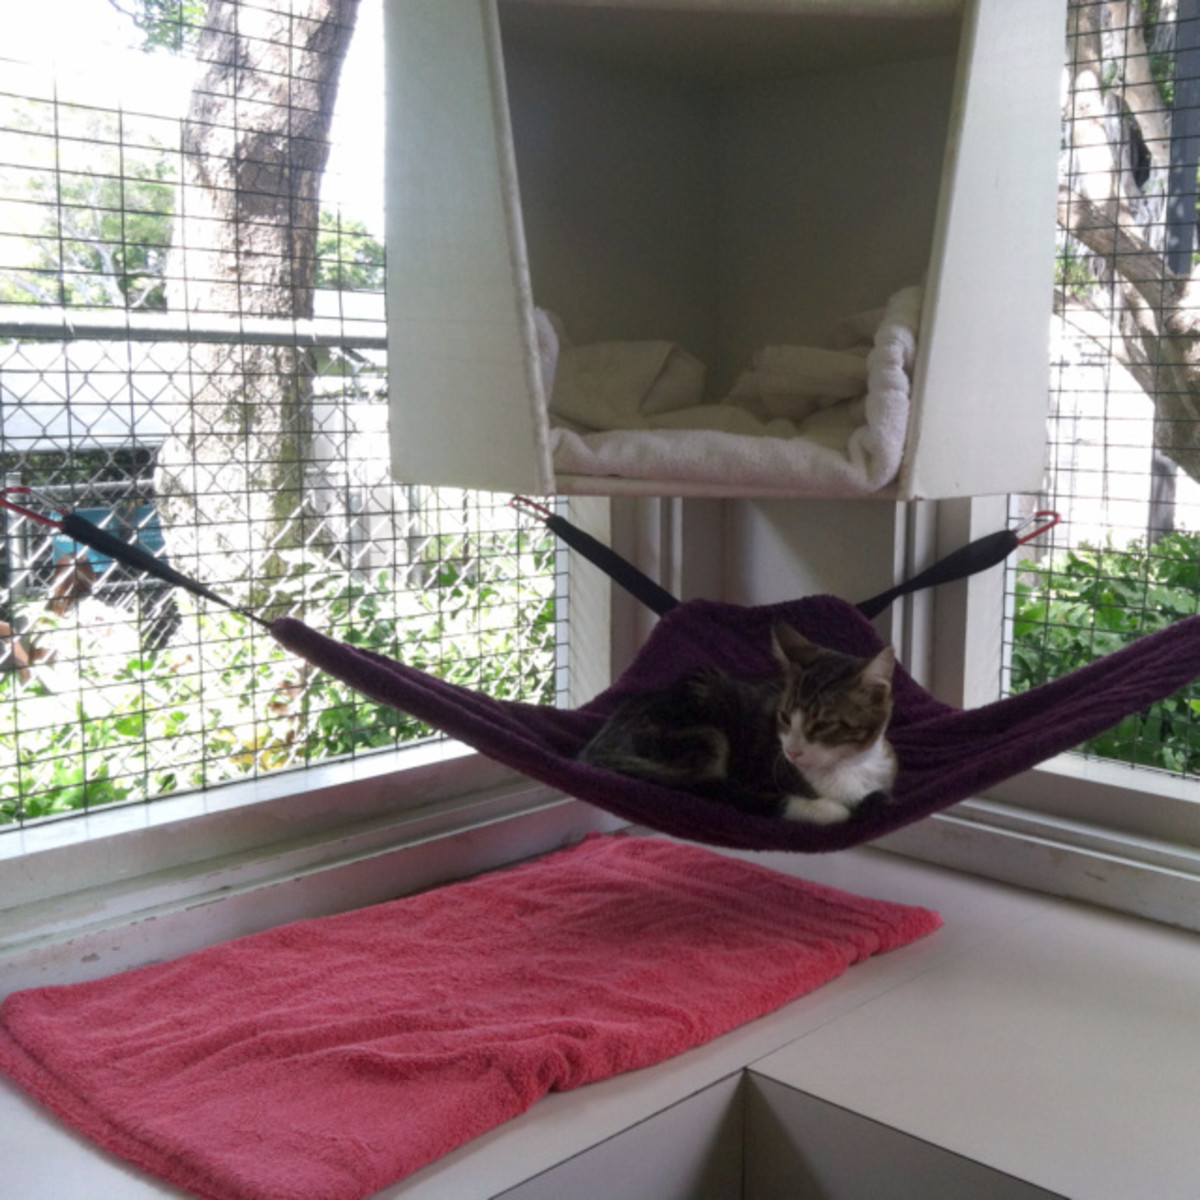 Here's one of the corner cat hammocks I made now in use at the Hawaiian Humane Society Cat House. Cats LOVE hanging out in these hammocks. :)